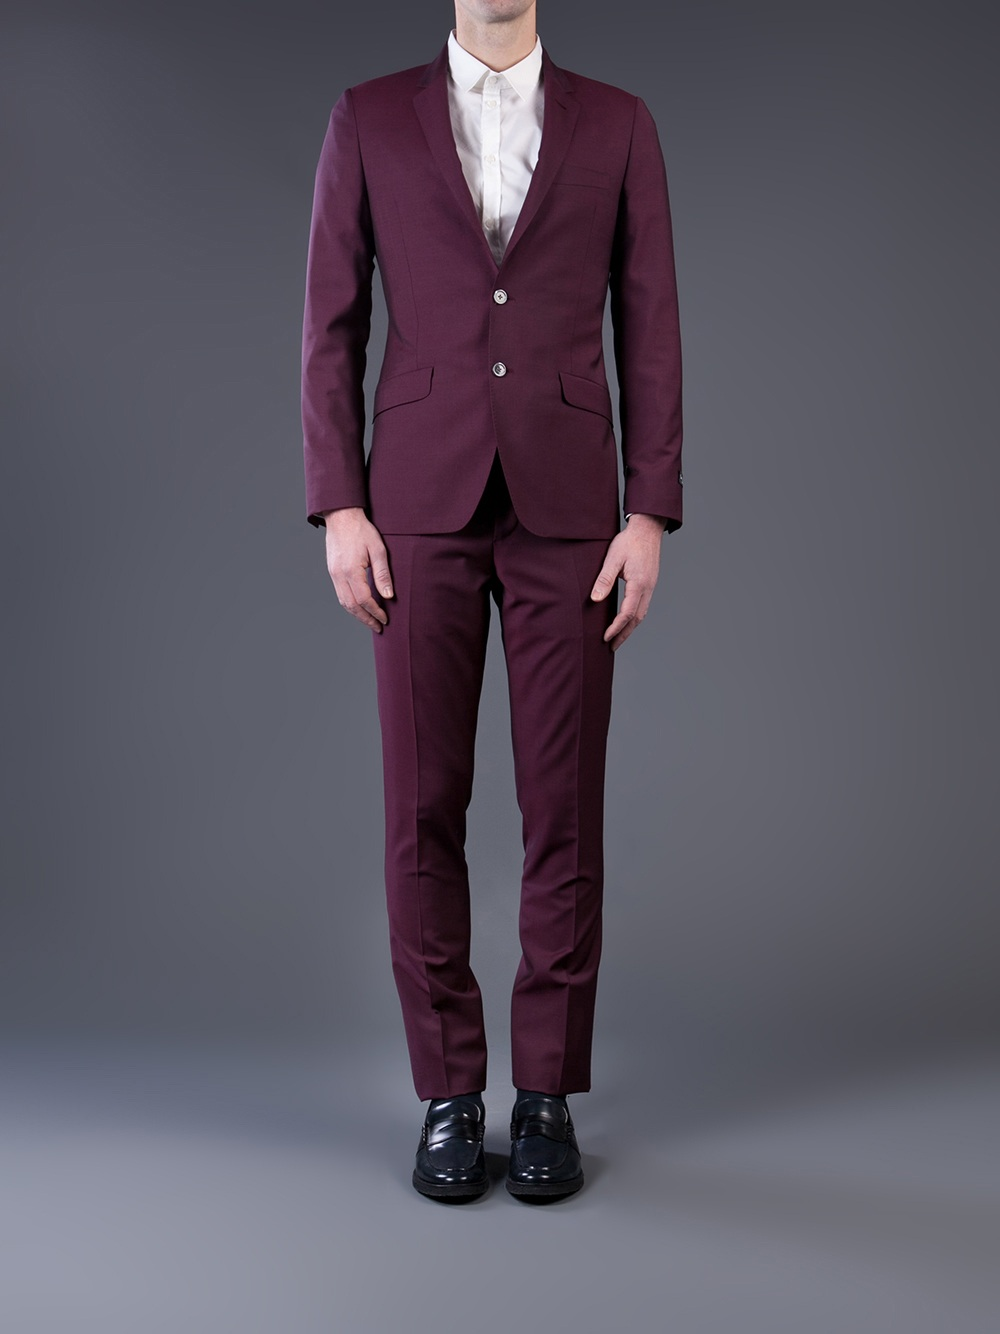 Paul Smith Travel Suit In Purple For Men Lyst